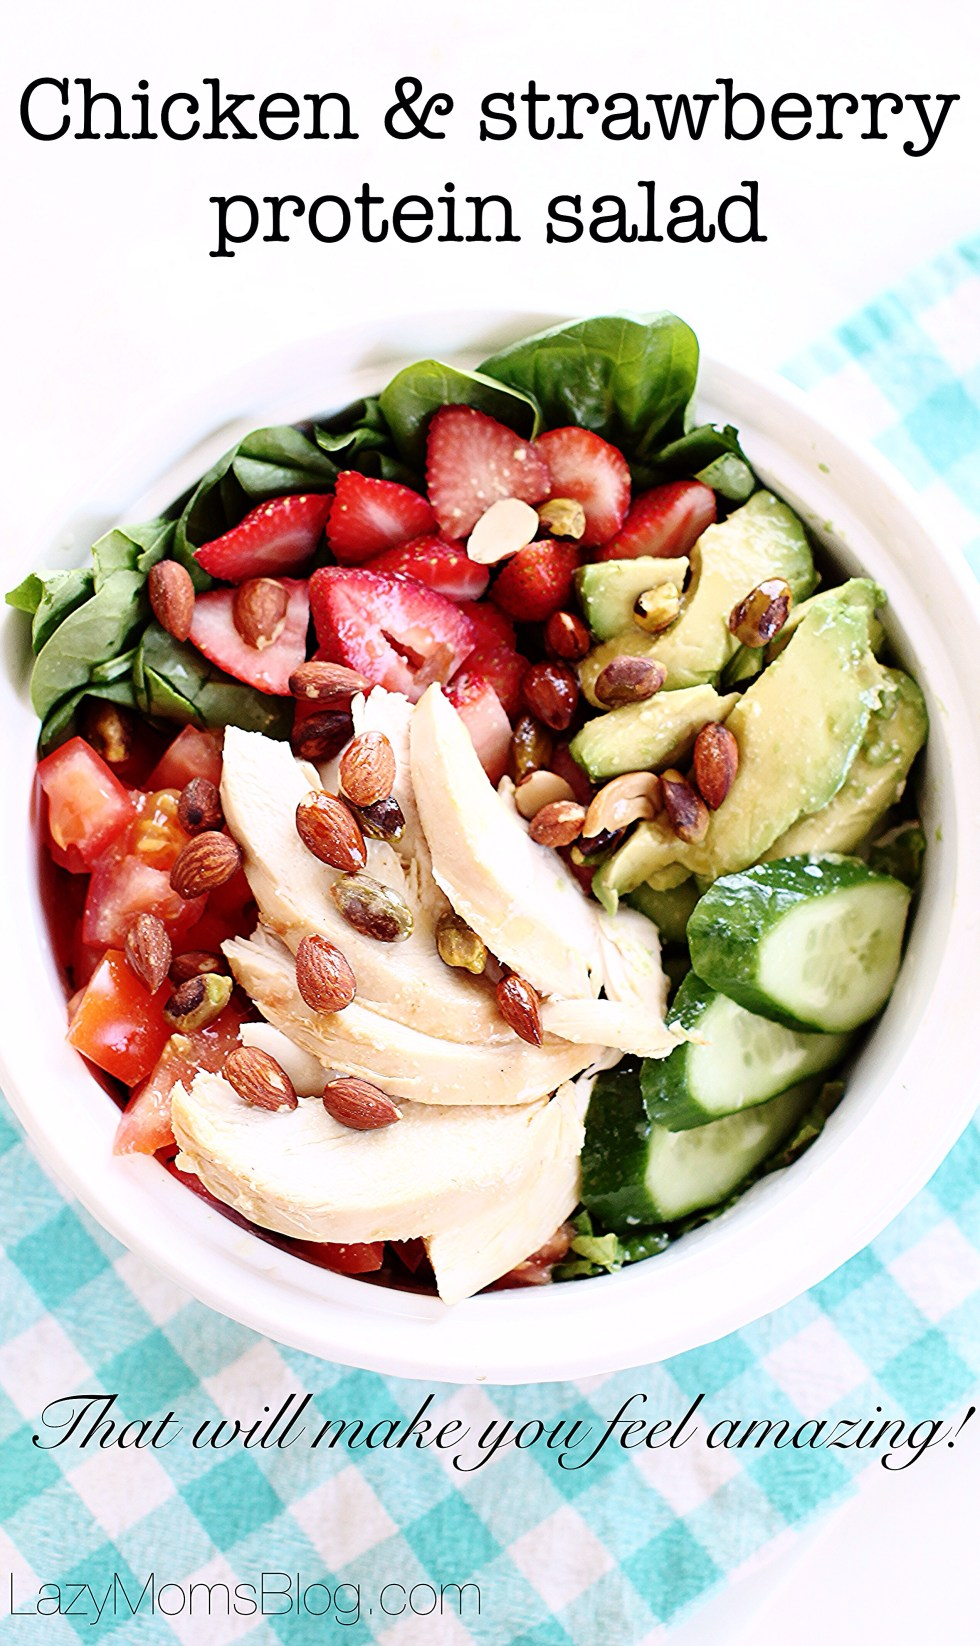 Strawberry chicken protein salad